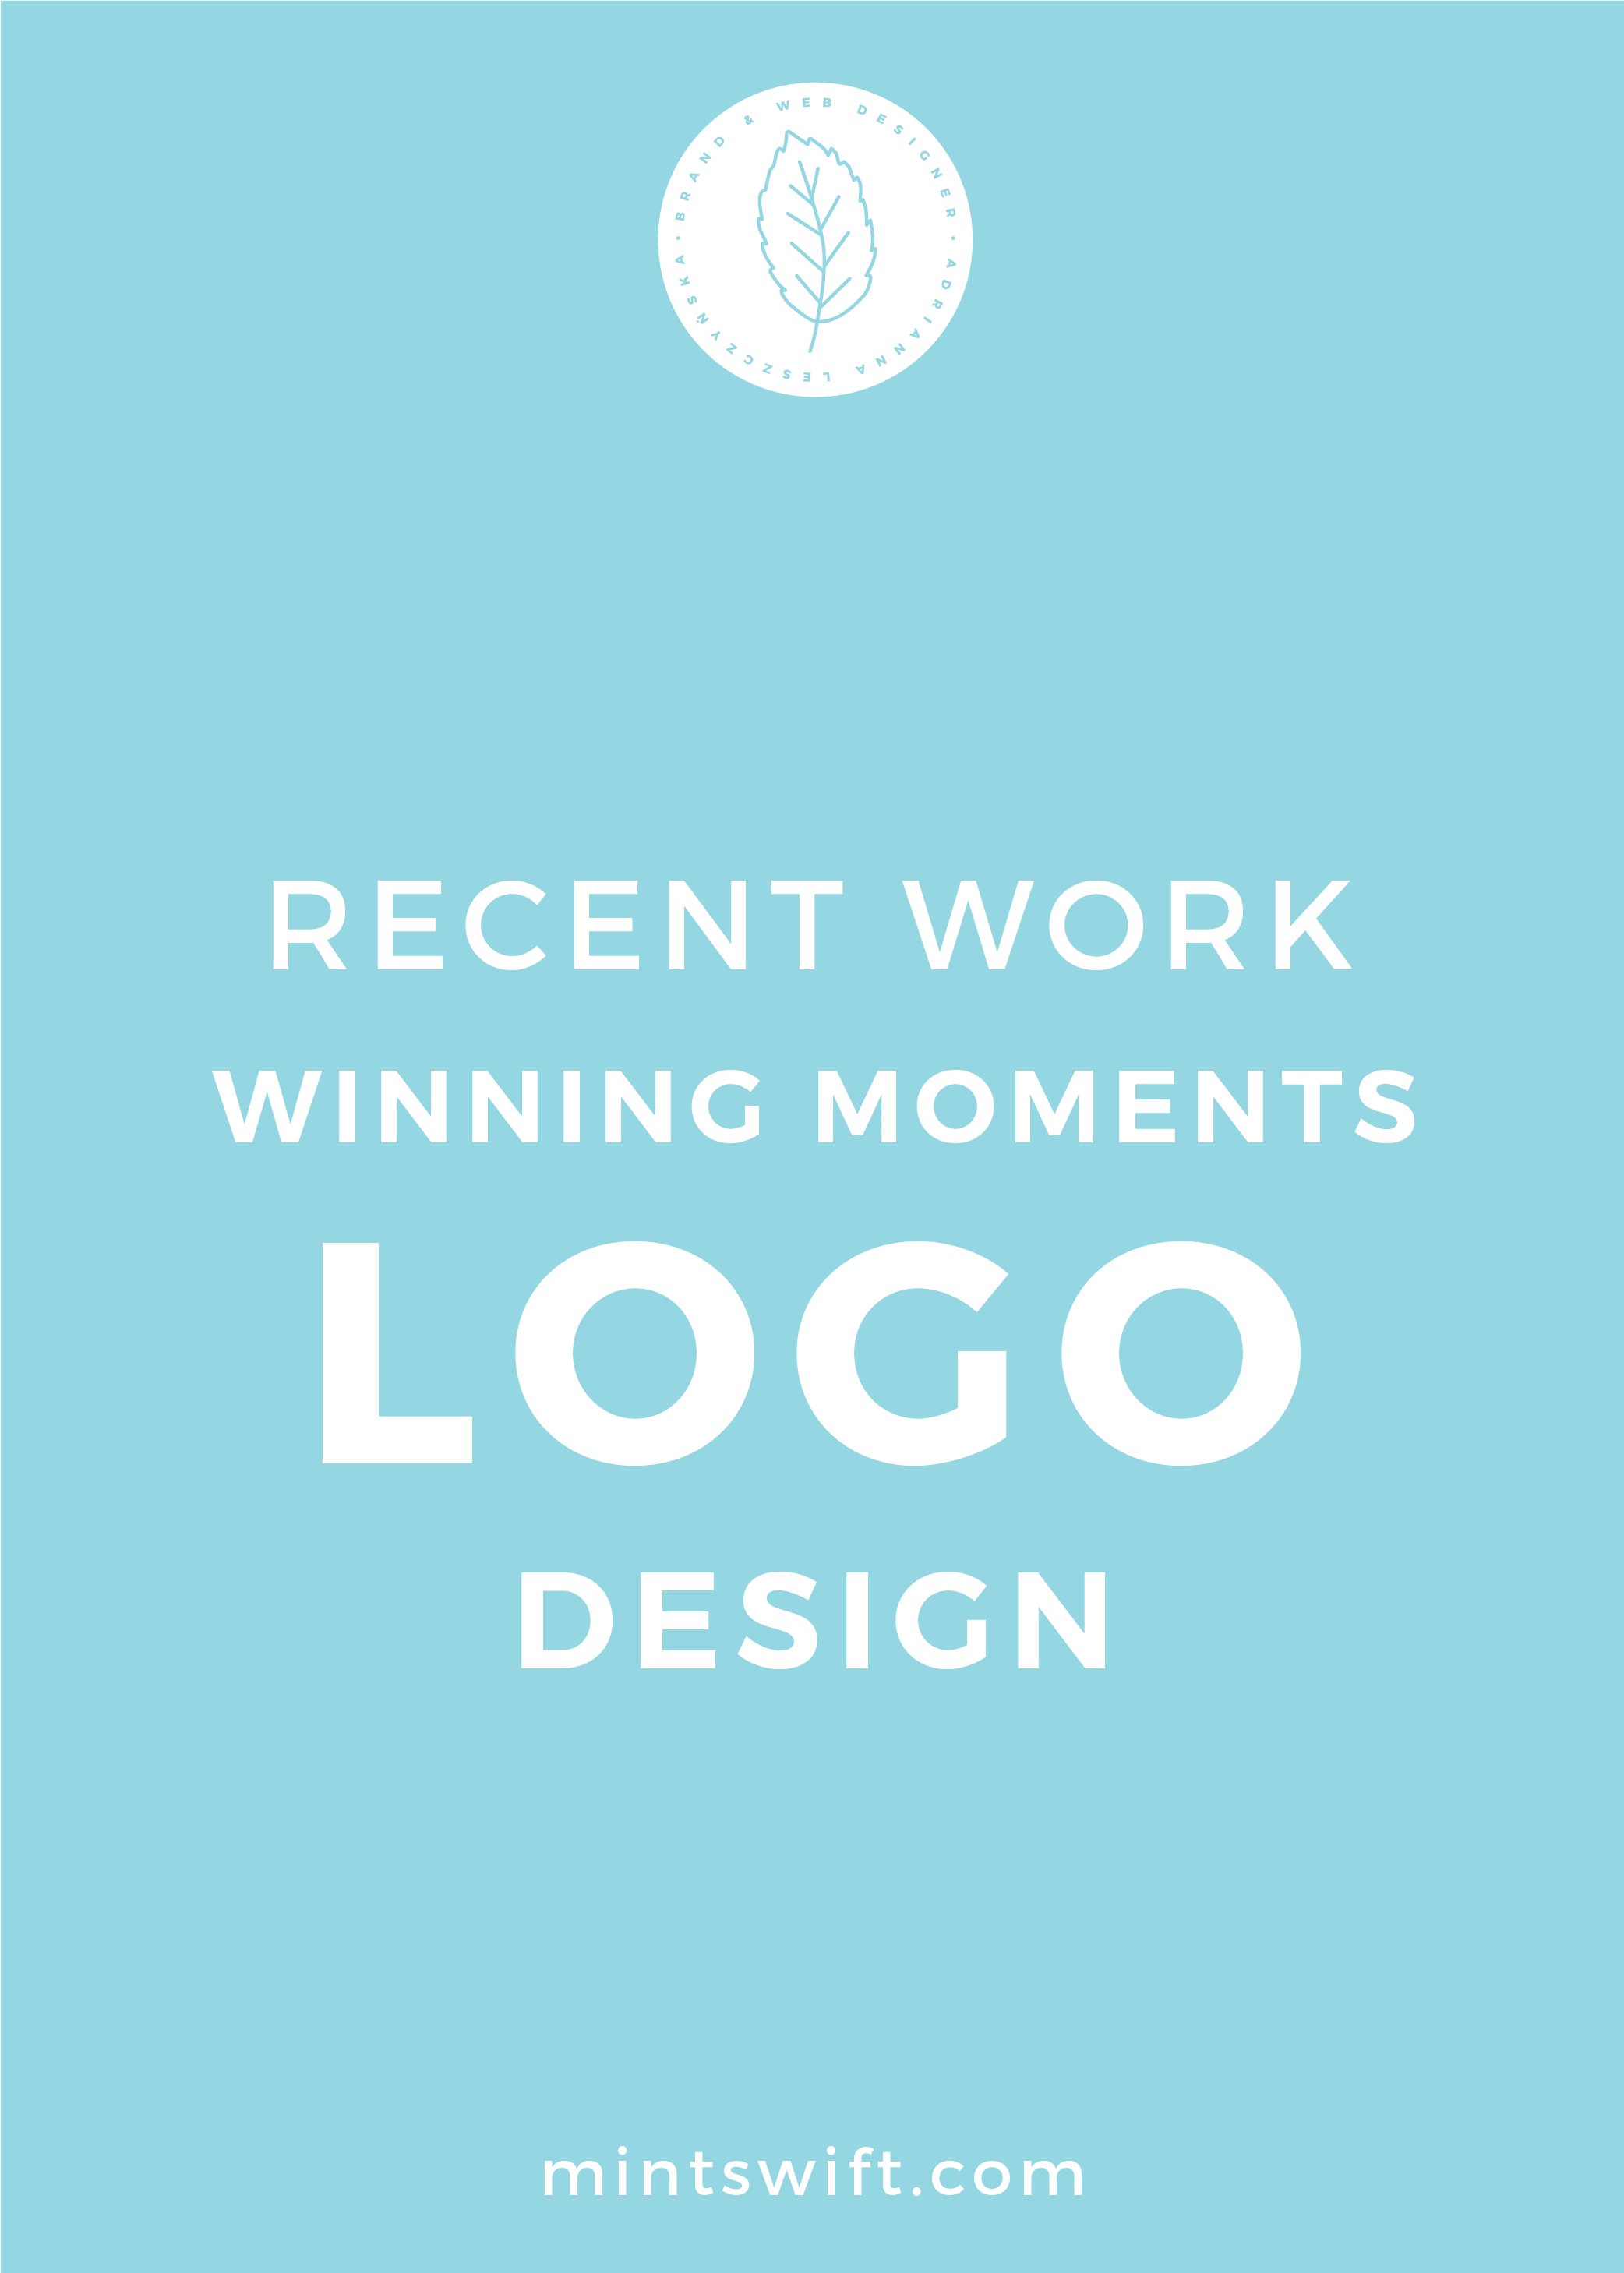 Recent Work Winning Moments Logo Design - MintSwift